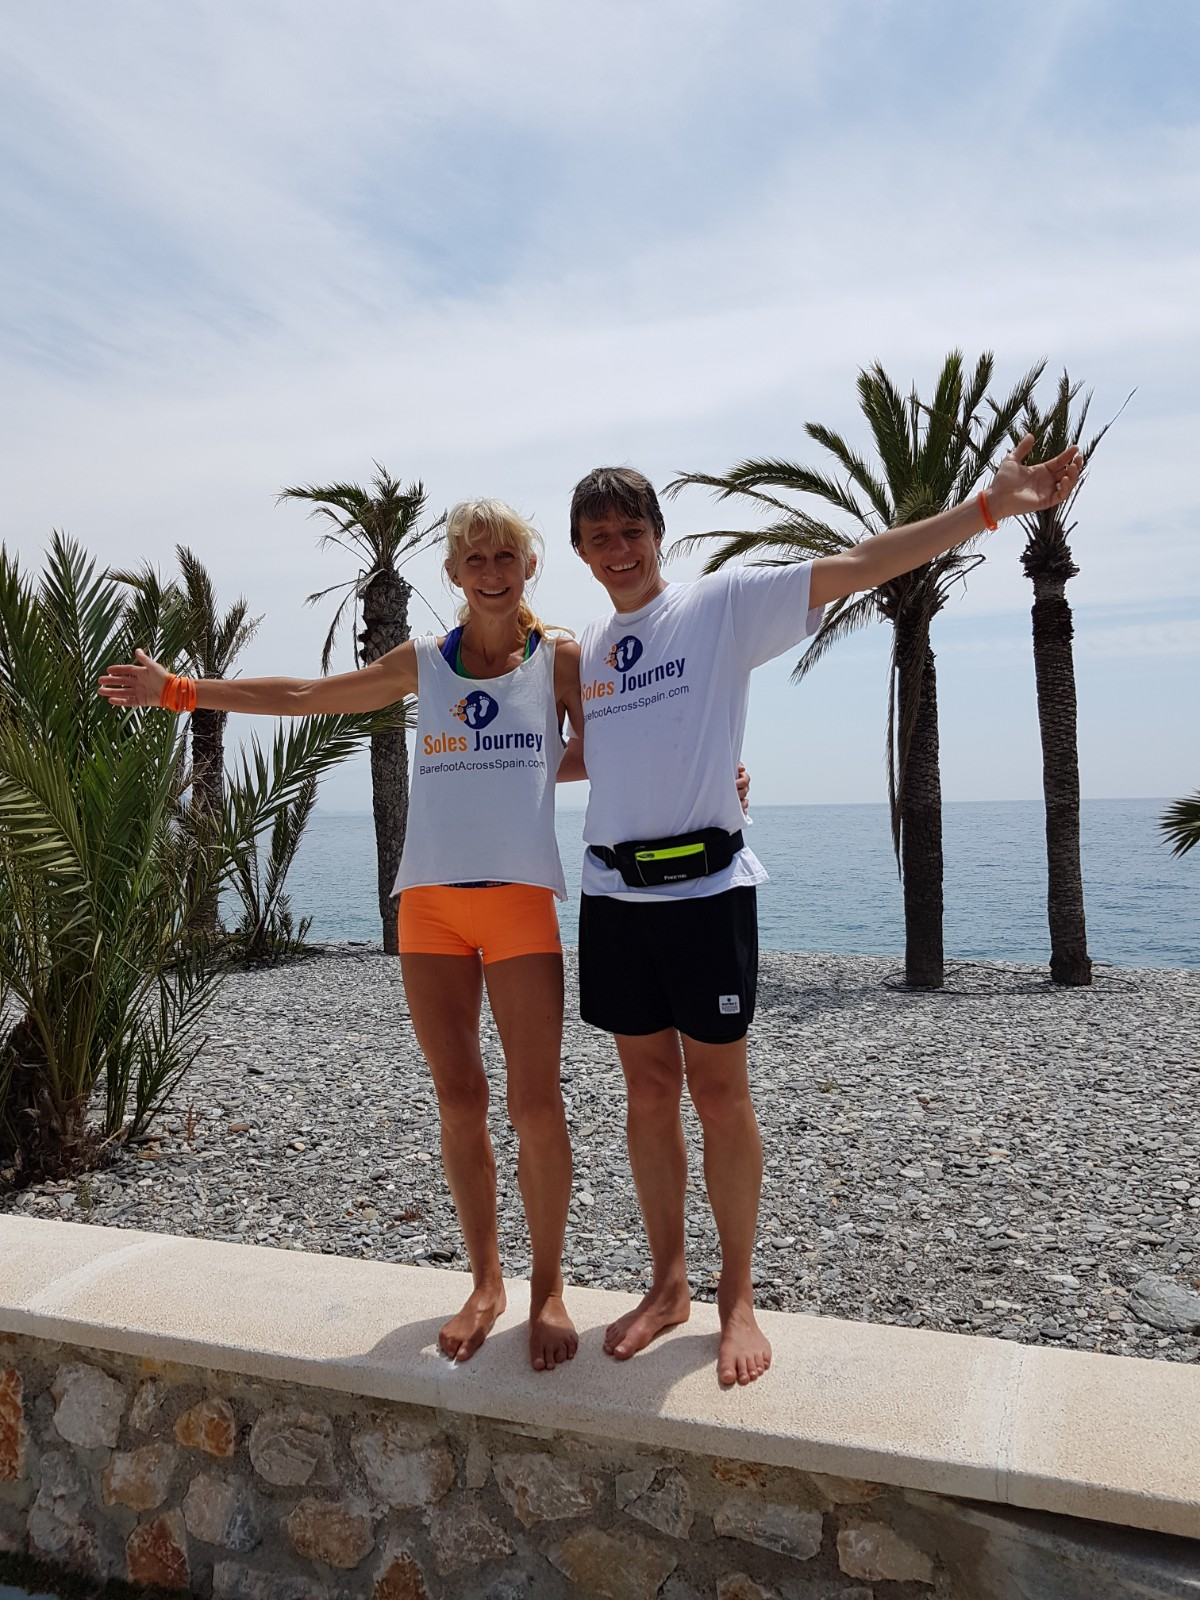 Anadi interviews me about the physical challenges running Barefoot Across Spain. No 2